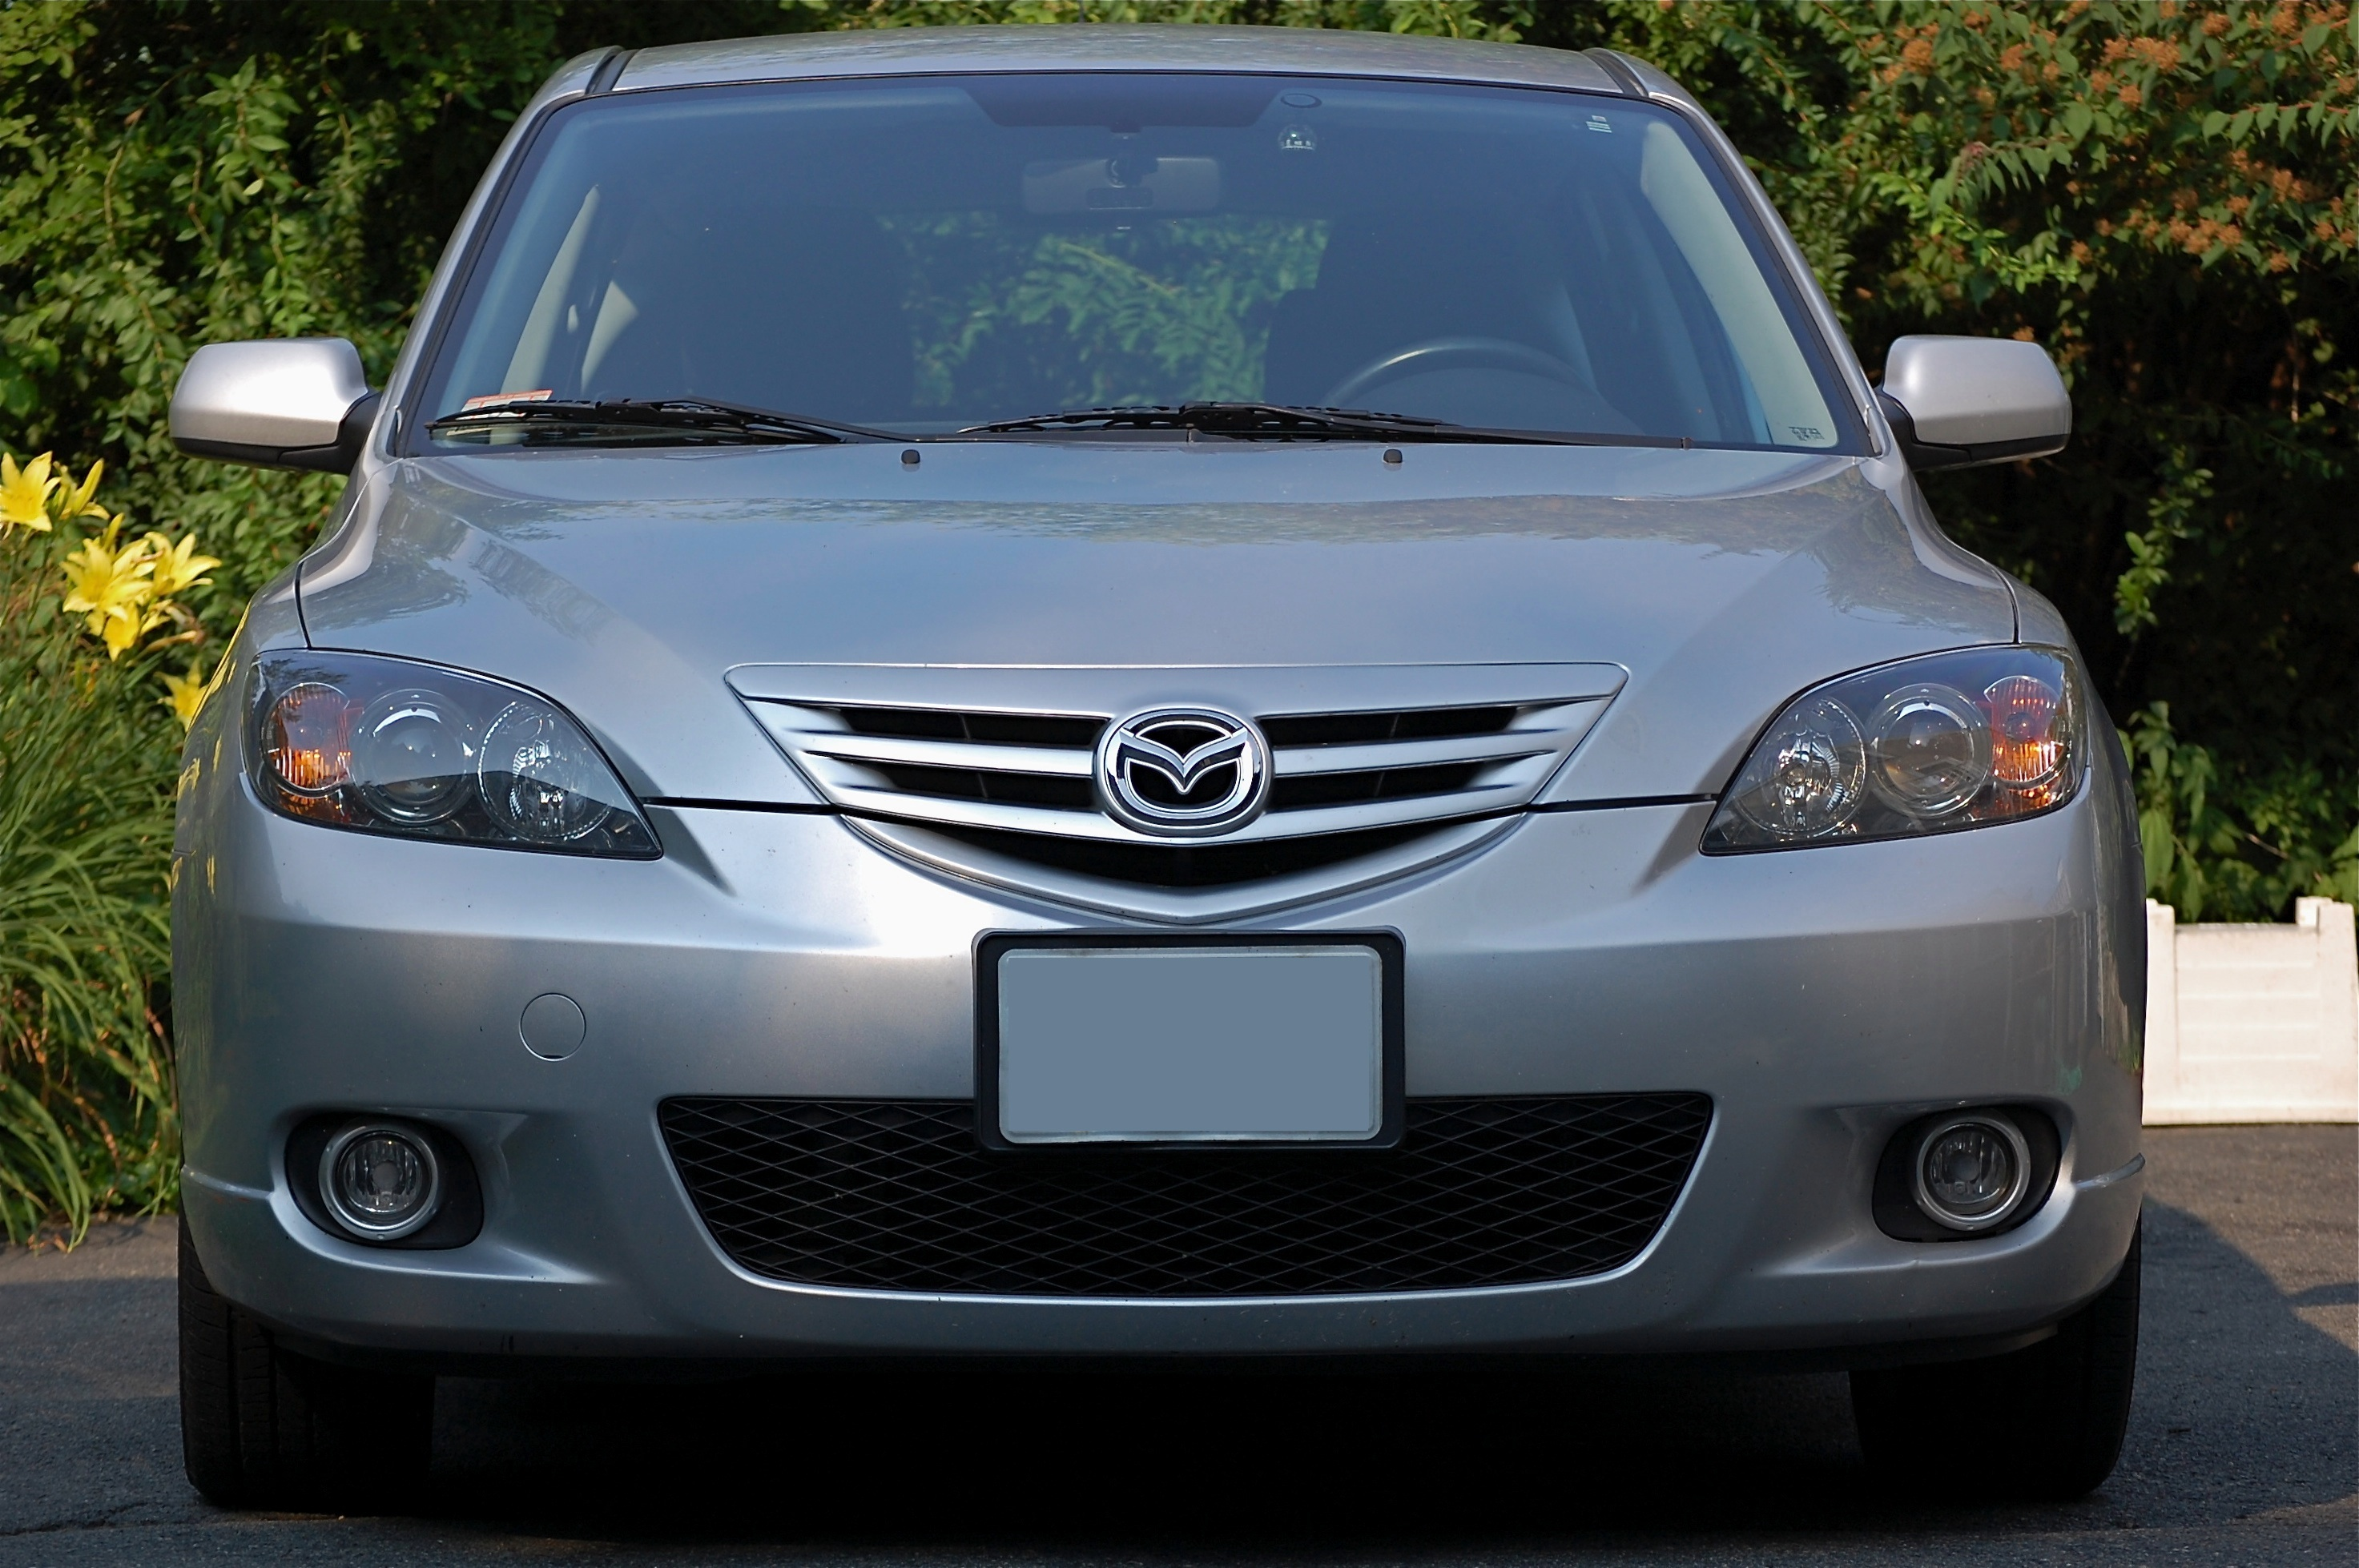 http://upload.wikimedia.org/wikipedia/commons/6/61/Mazda3s-2005-Grill.jpg